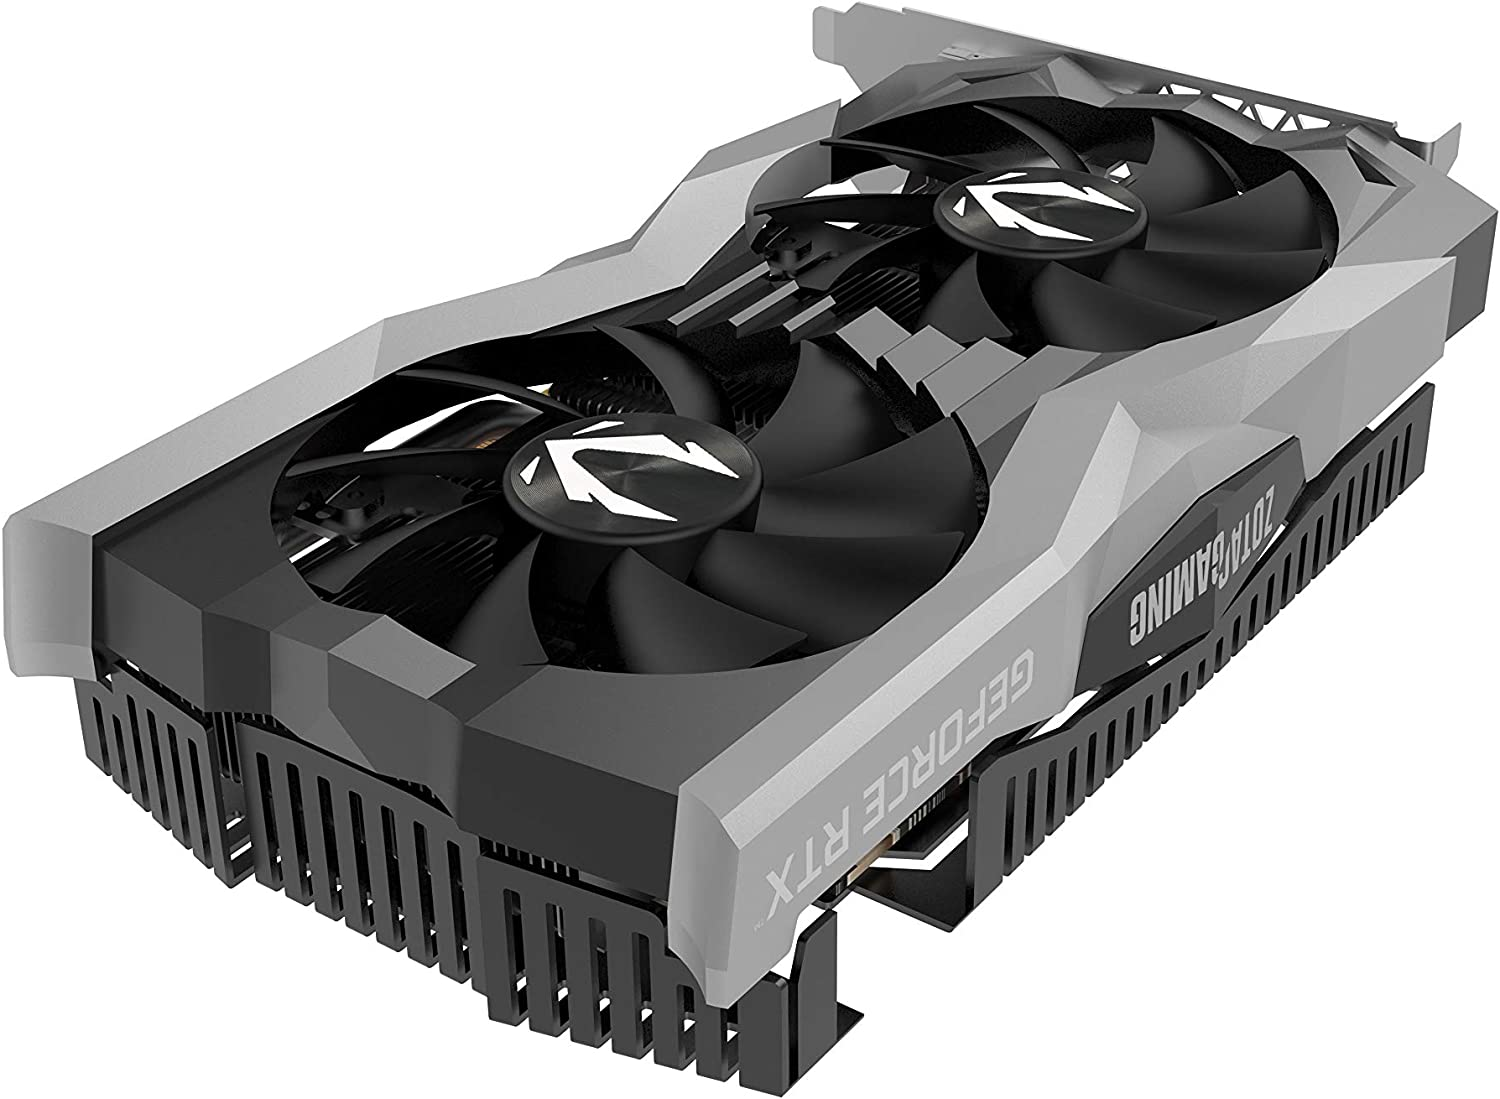 Top GeForce RTX 2060 Super Graphics Cards - August 2020